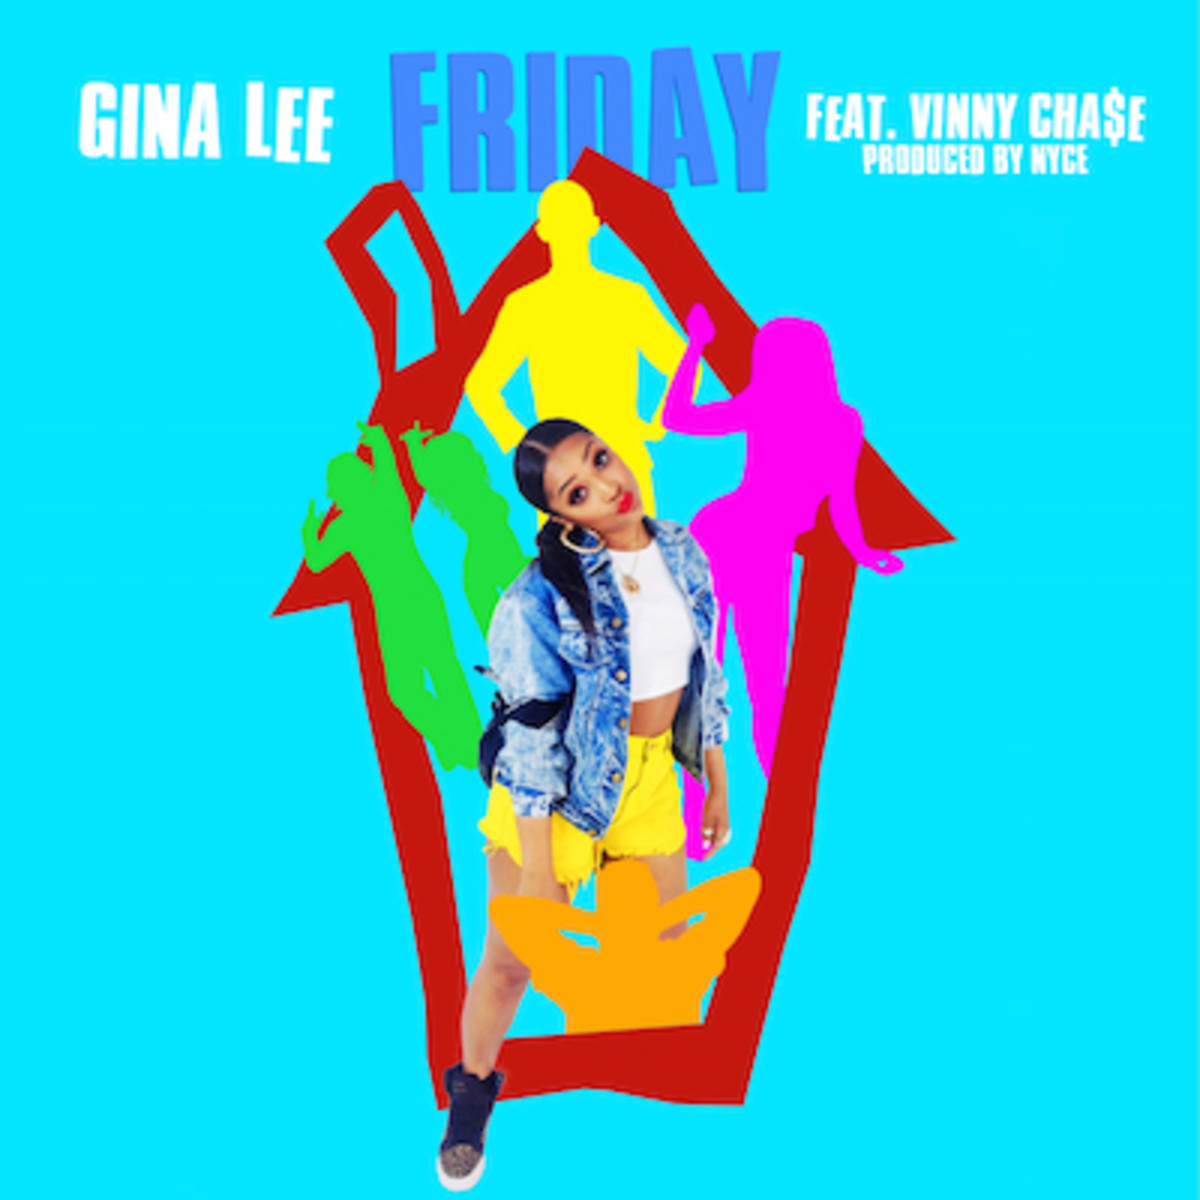 gina-lee-friday.jpg